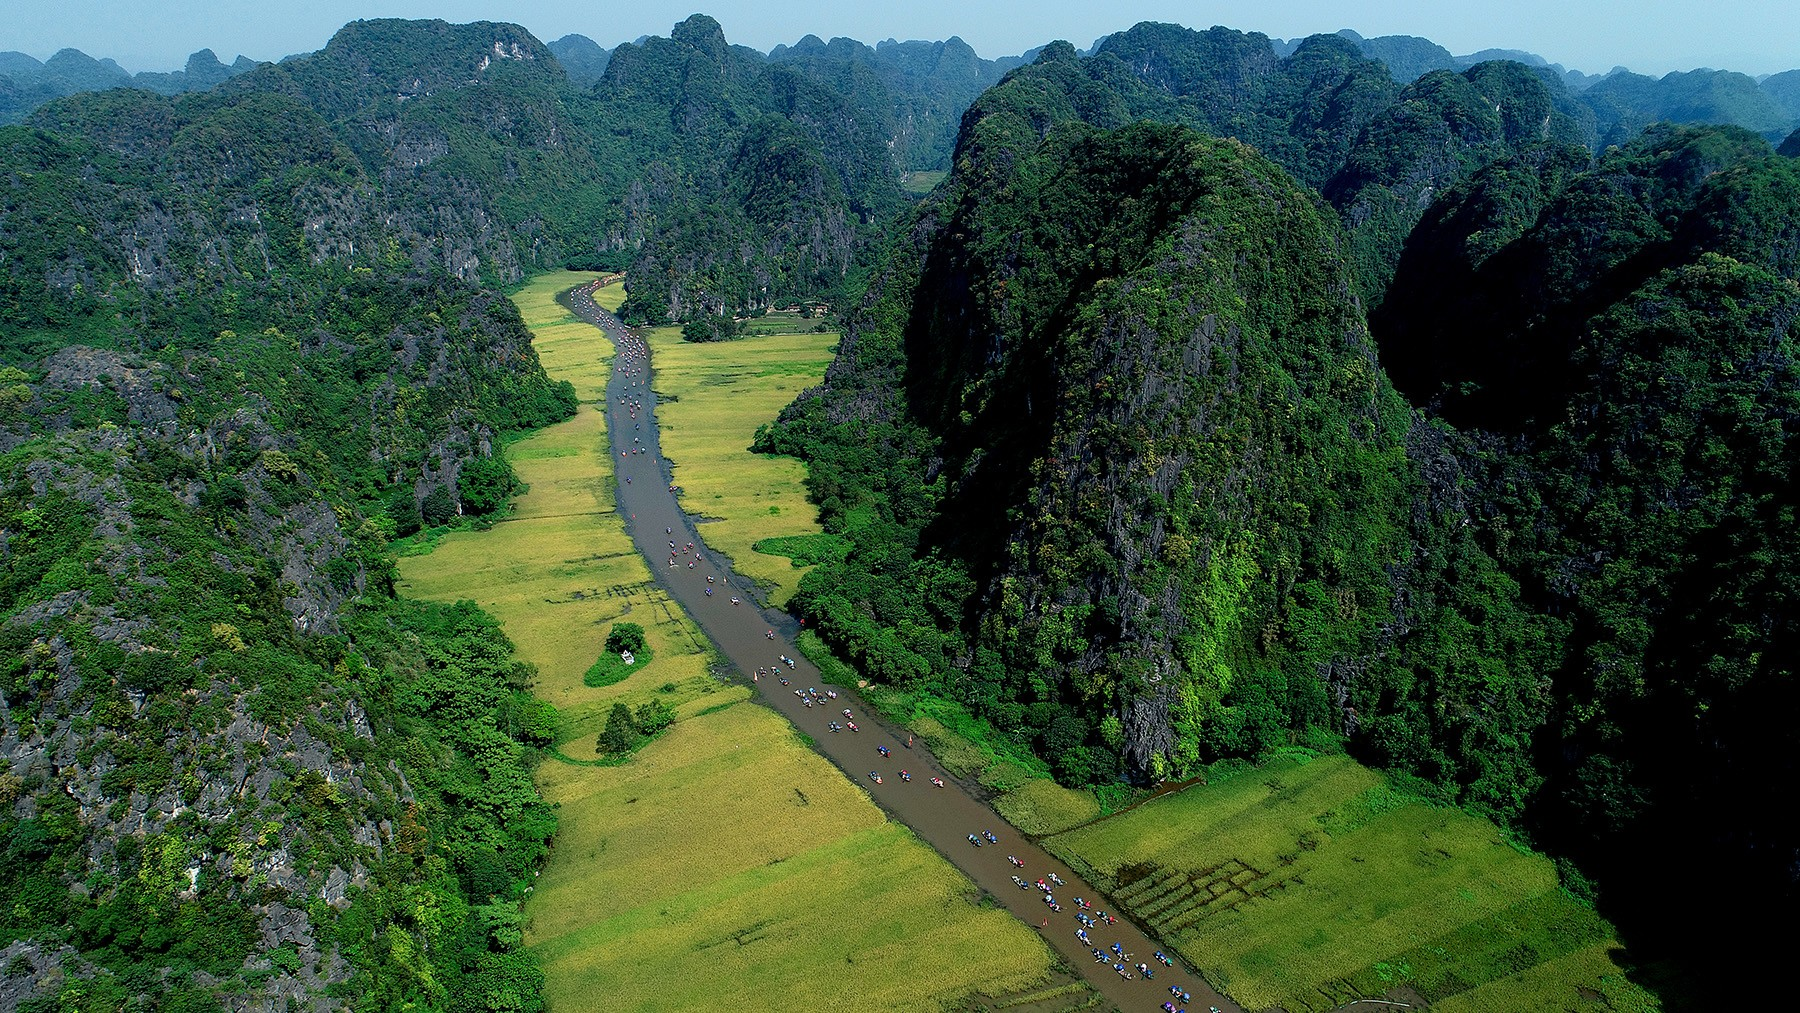 The beauty of Tam Coc captured from above.